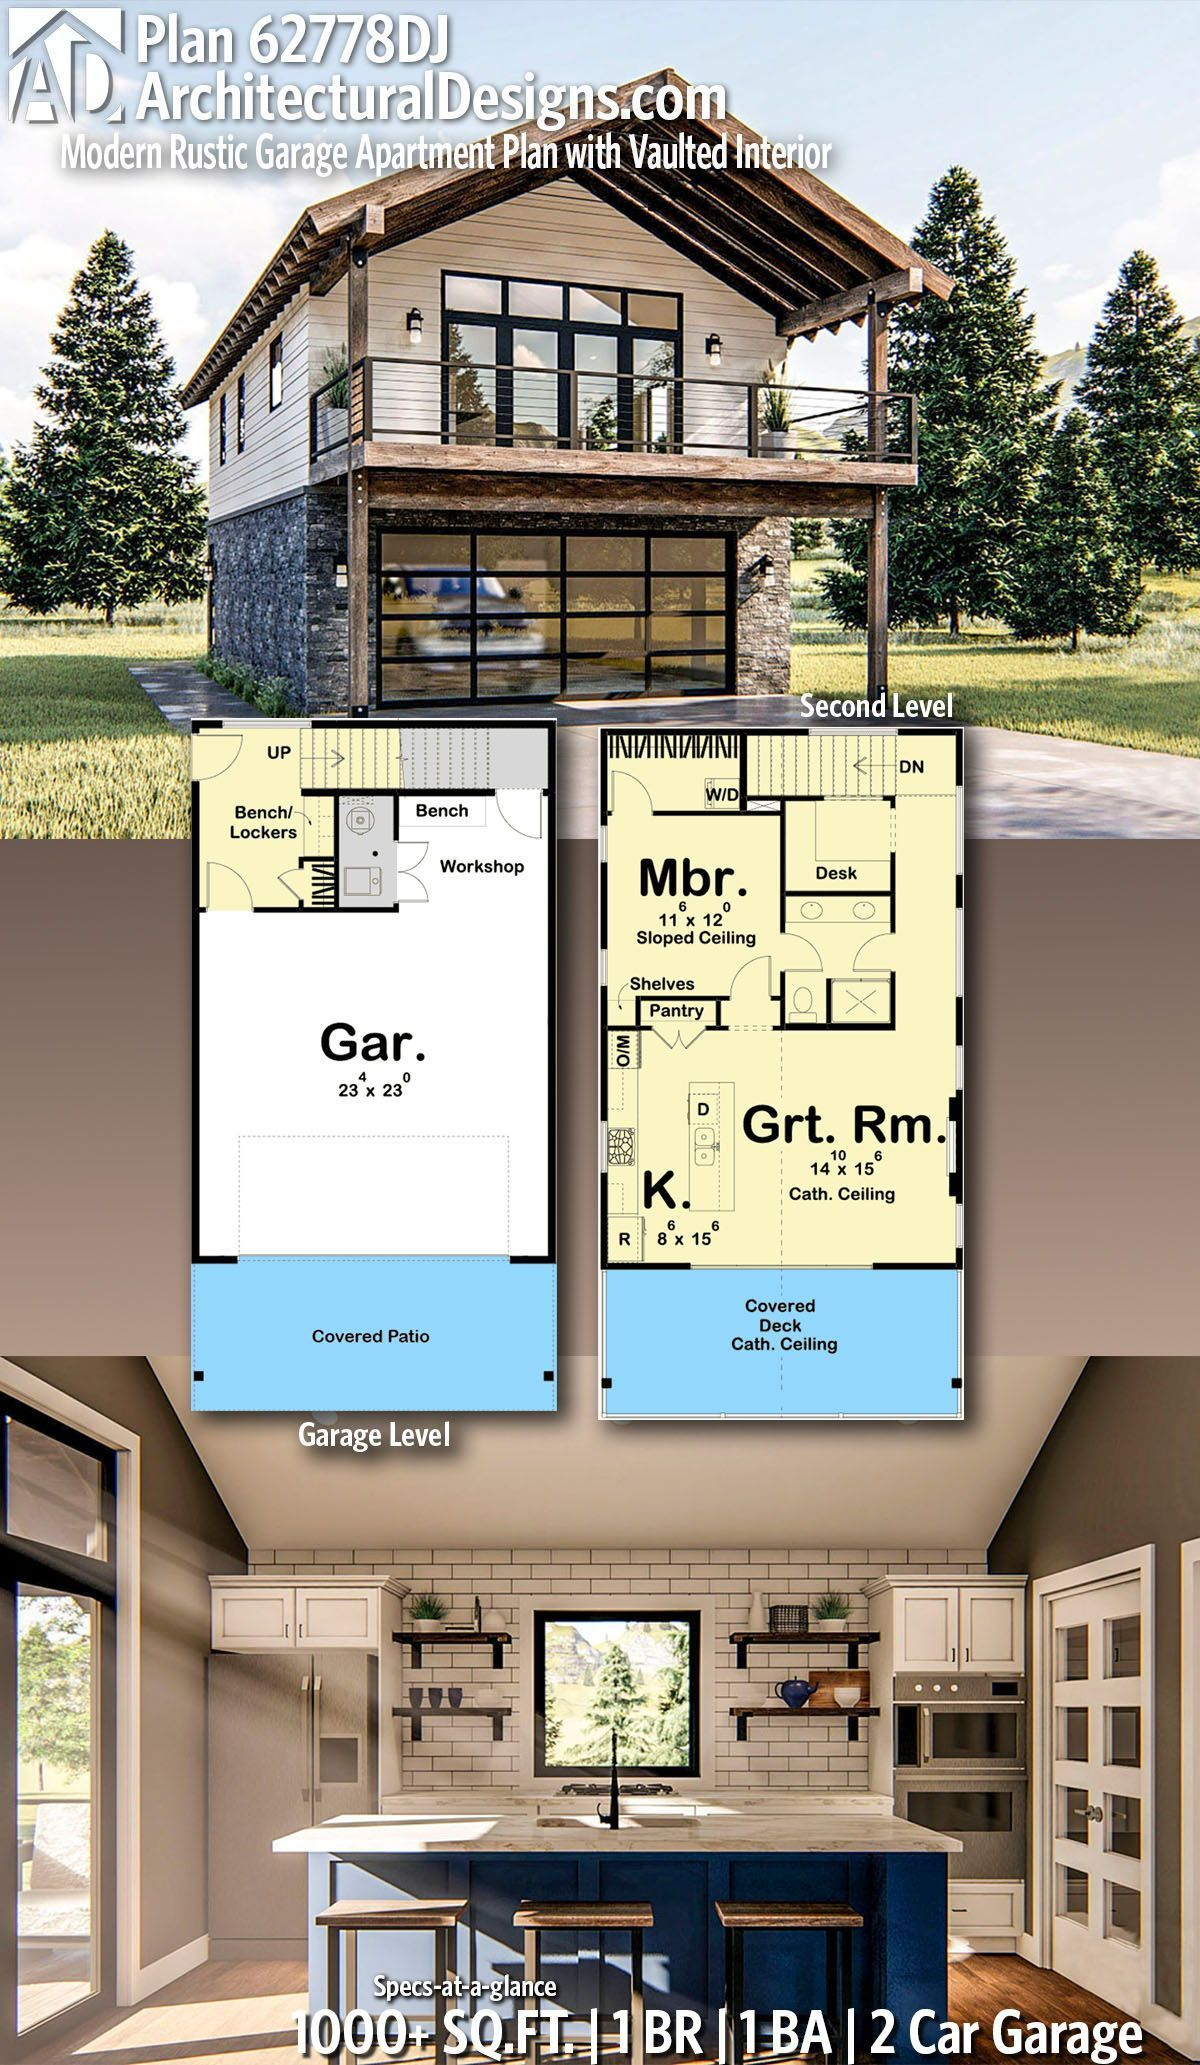 Architectural Designs Home Plan 62778DJ gives you 1 bedrooms, 1 baths,1,000+ sq. ft. plus a 2 Car Garage! Ready when you are! Where do YOU want to build? #62778DJ #adhouseplans #architecturaldesigns #houseplans #architecture #newhome #newconstruction #newhouse  #modern #garage #carriage #homeplans #architecture #home #homesweethome #interiordesign